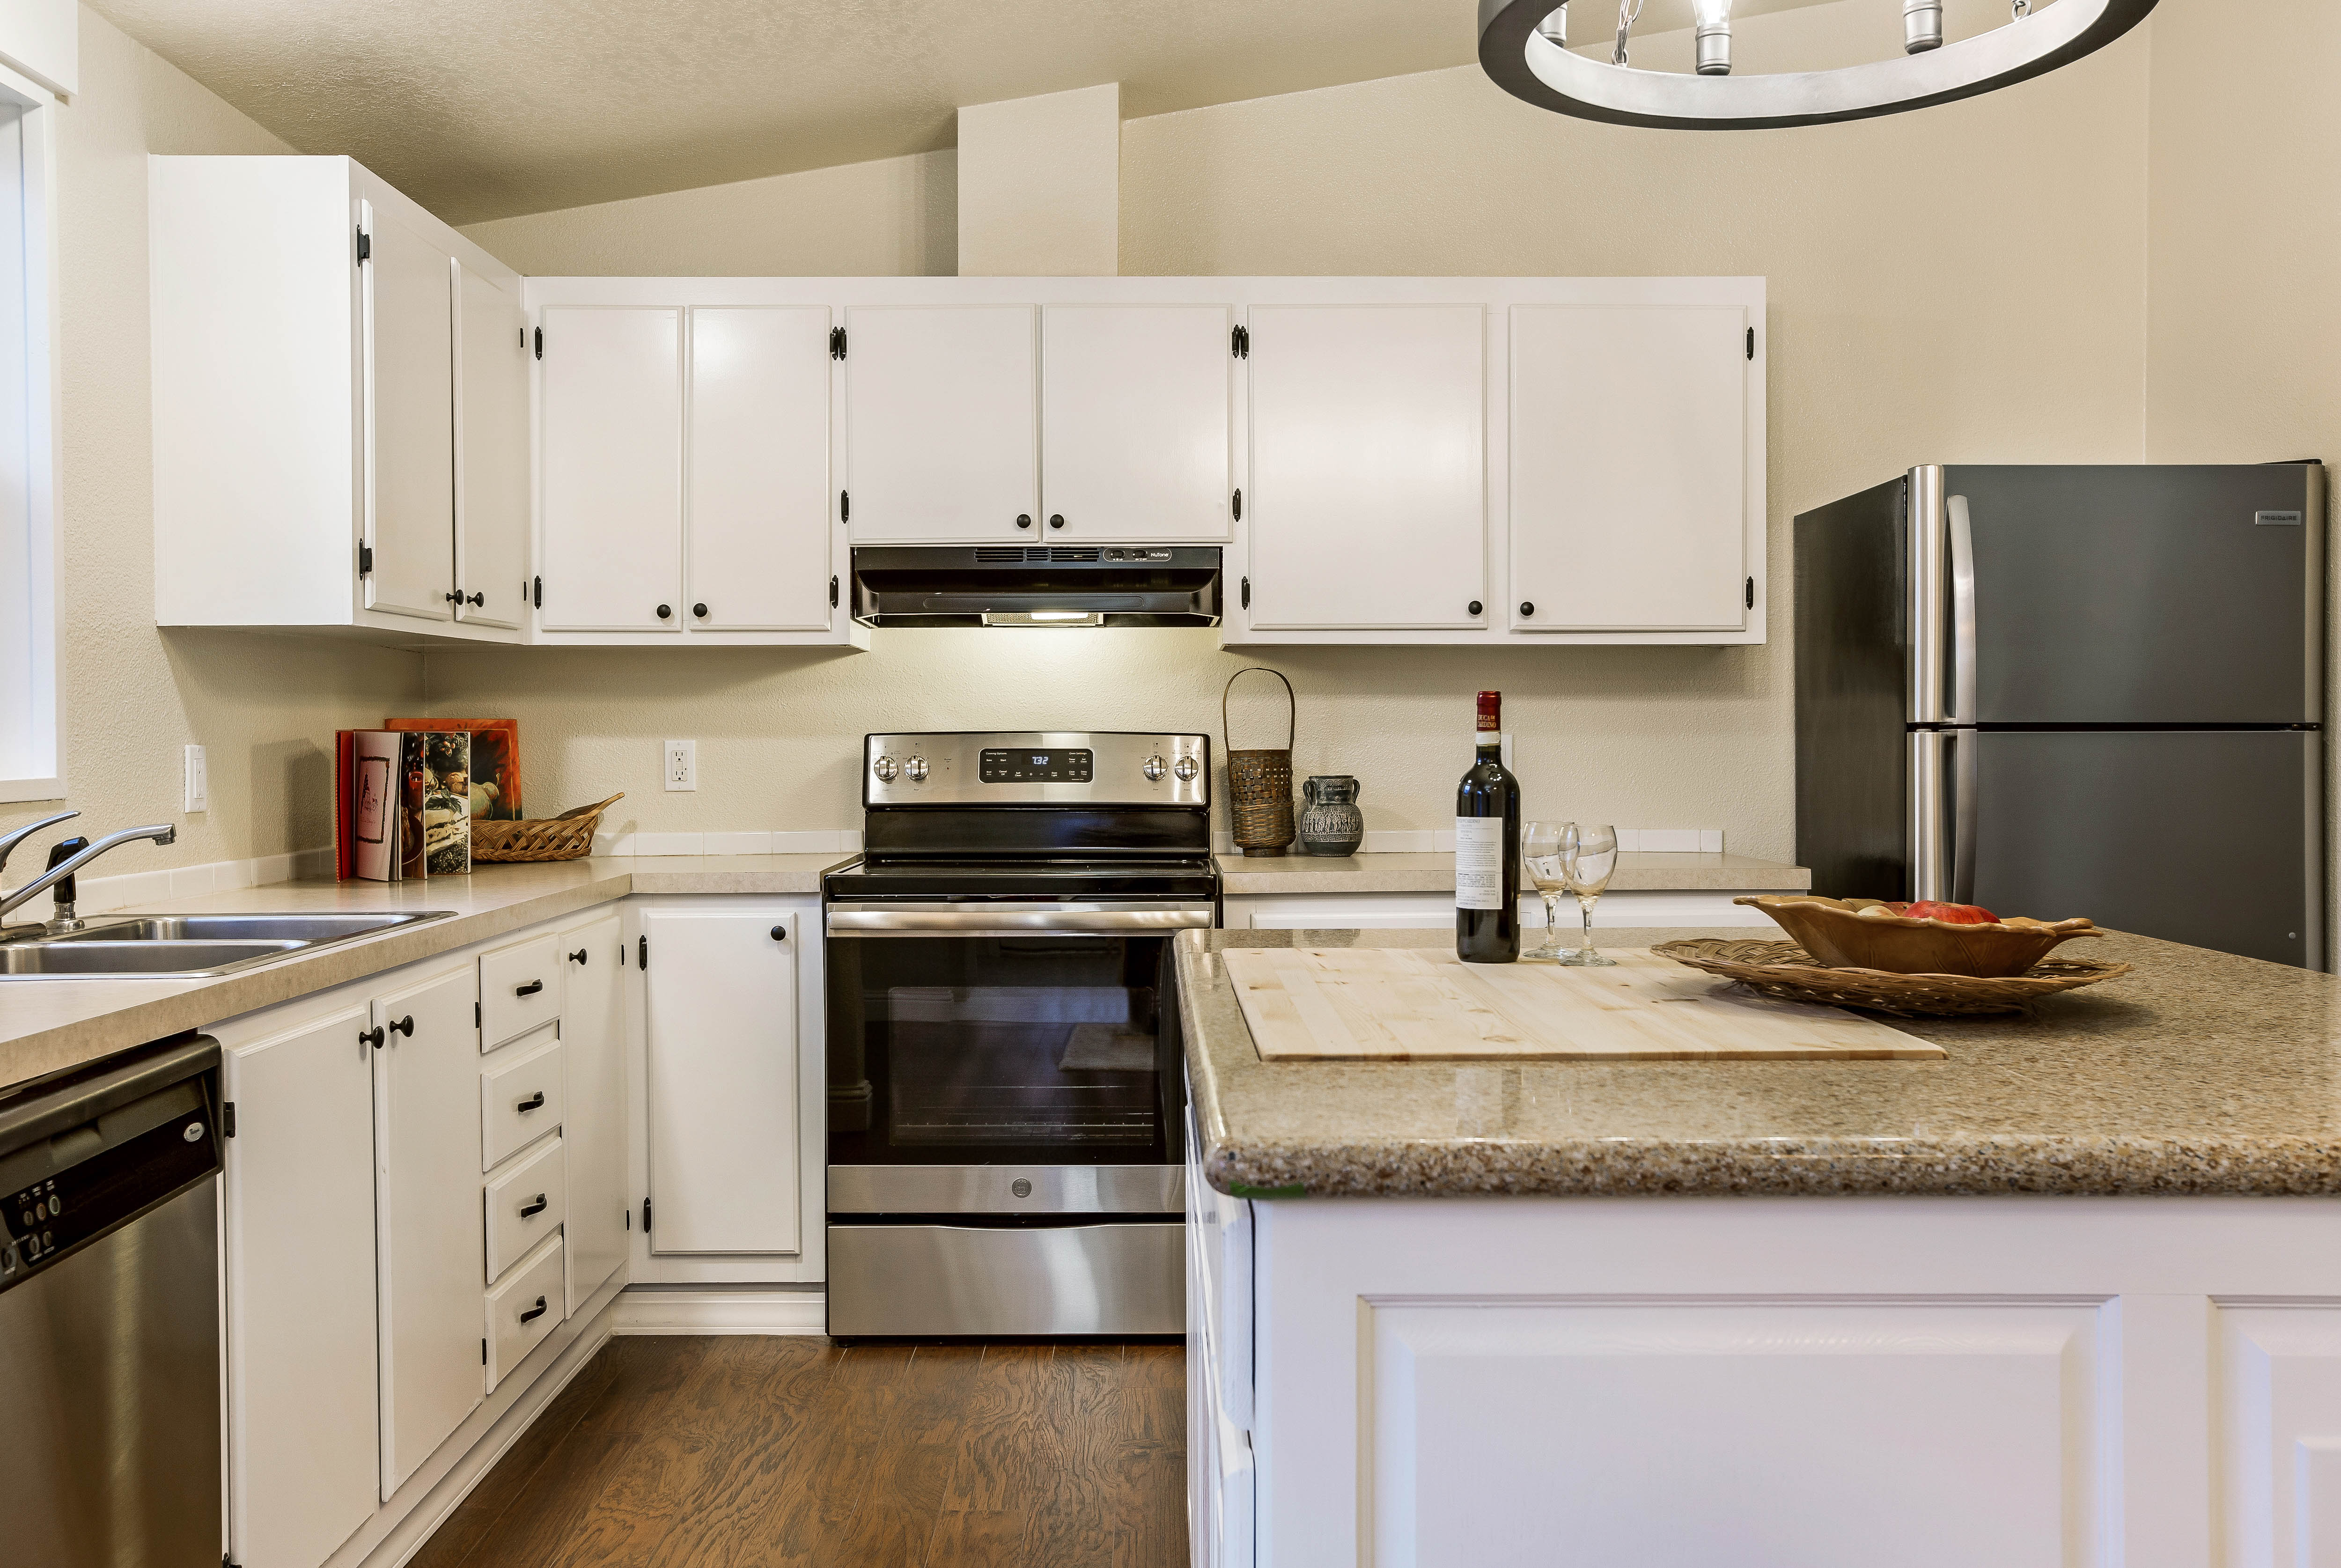 Kitchen, home for sale, Anita Johnston, Windermere, whidbey Island